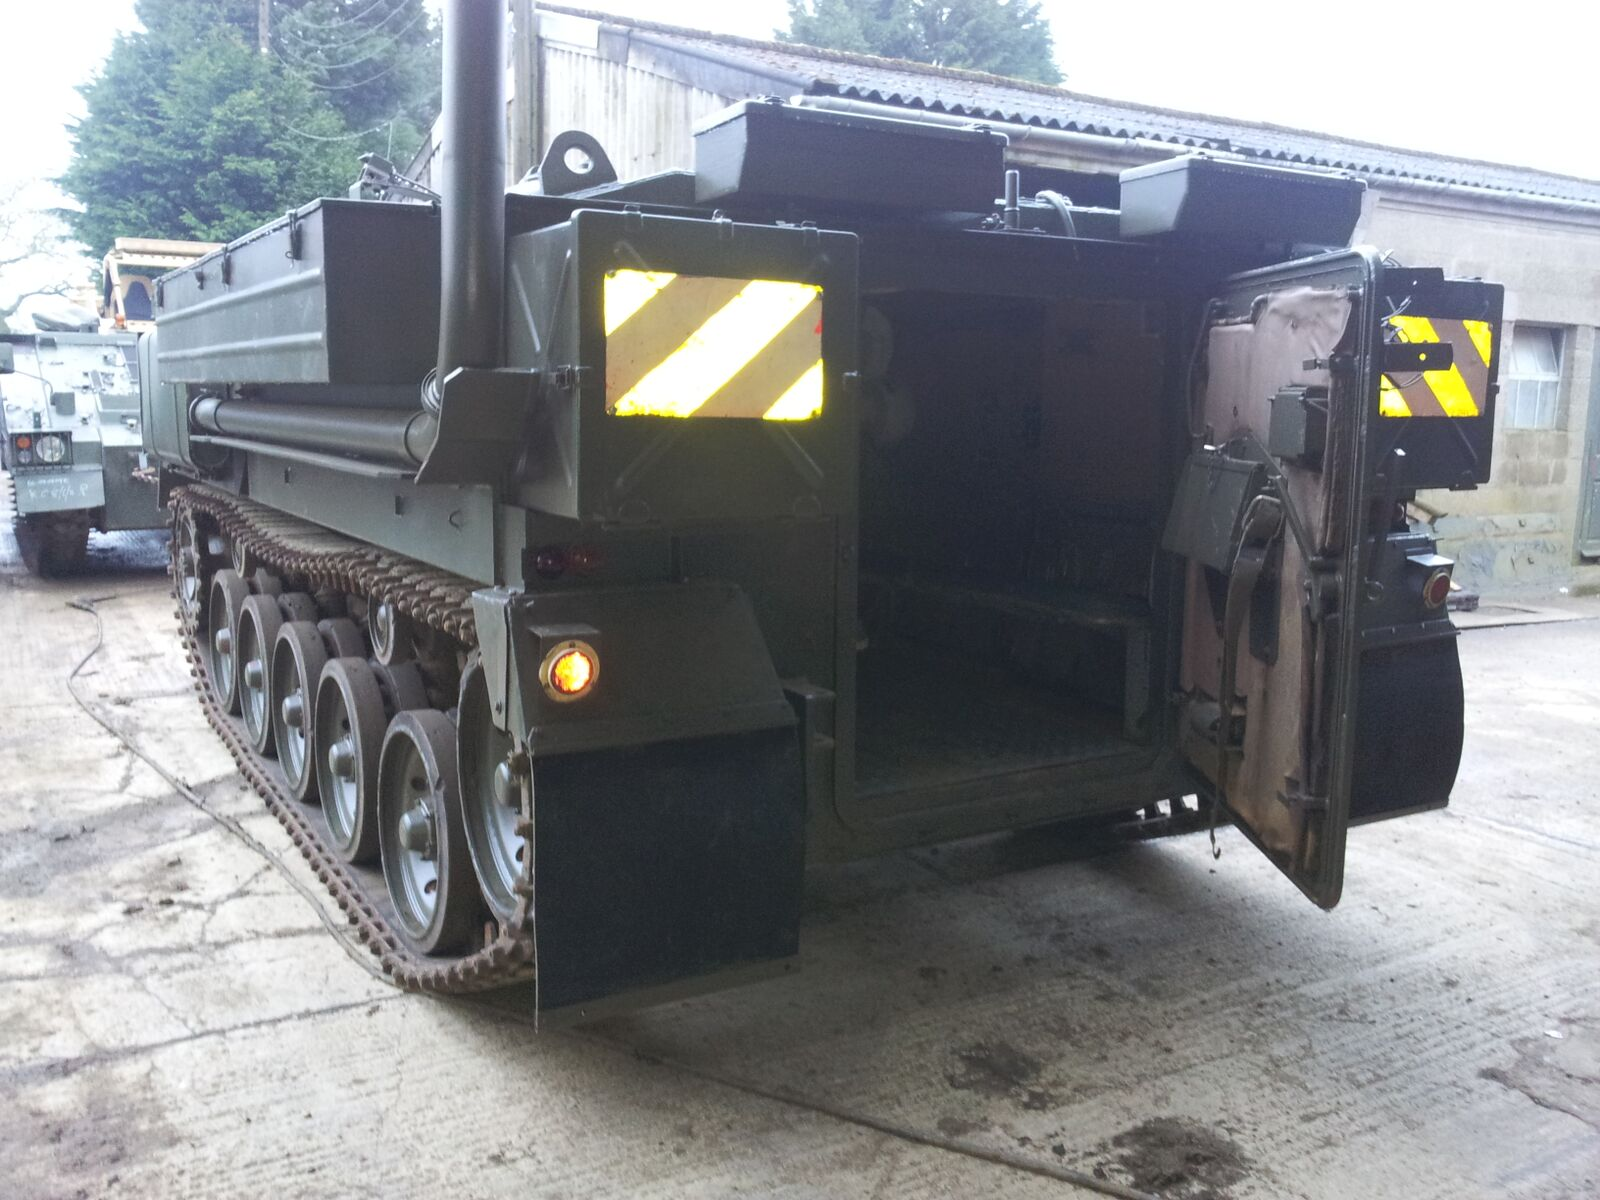 FV432 Armoured Personnel Carrier For Sale (UK) From £6000